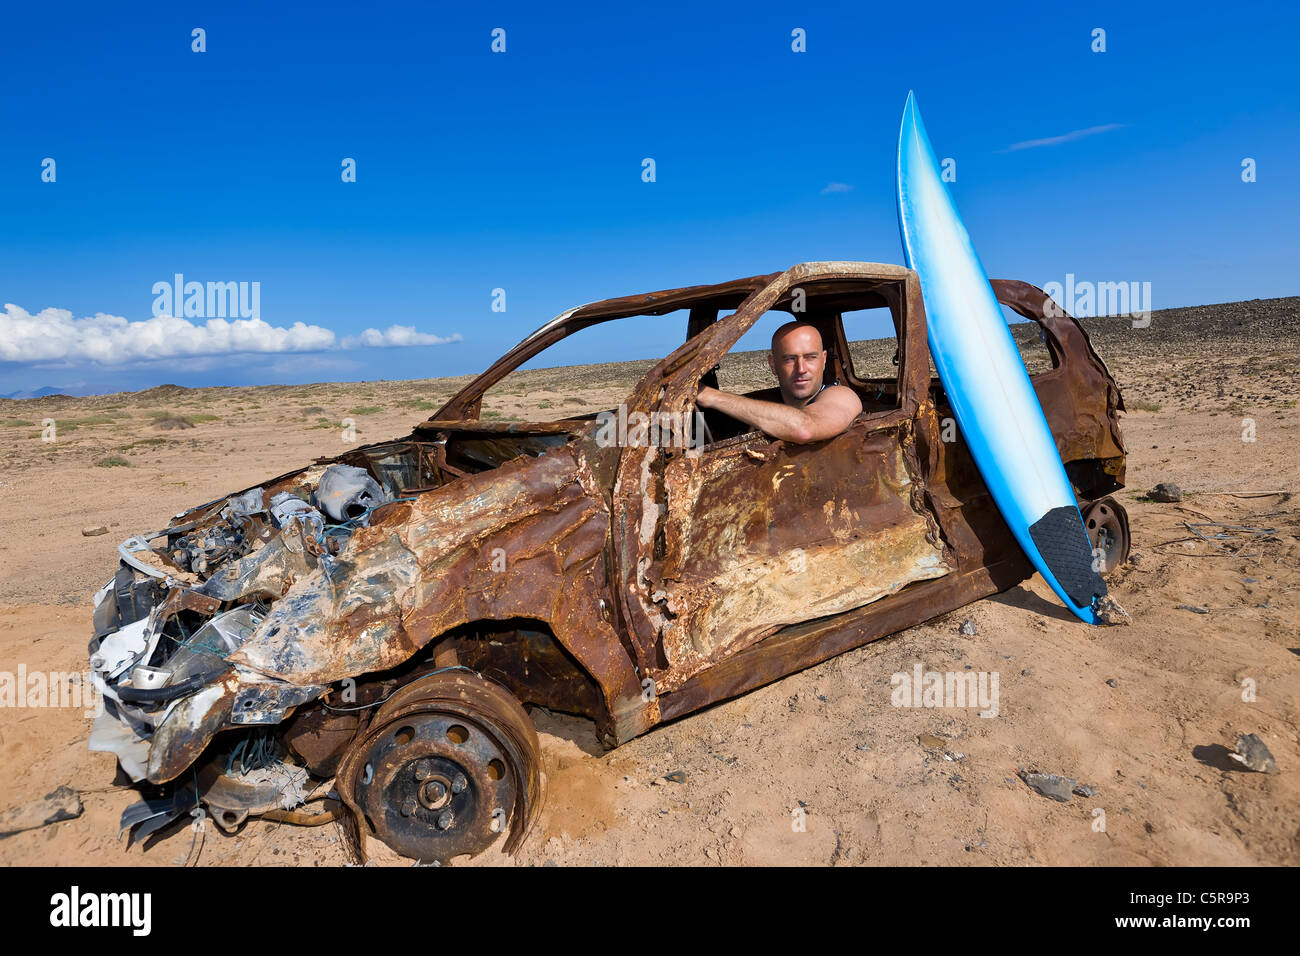 Surfer needs a new set of wheels. - Stock Image